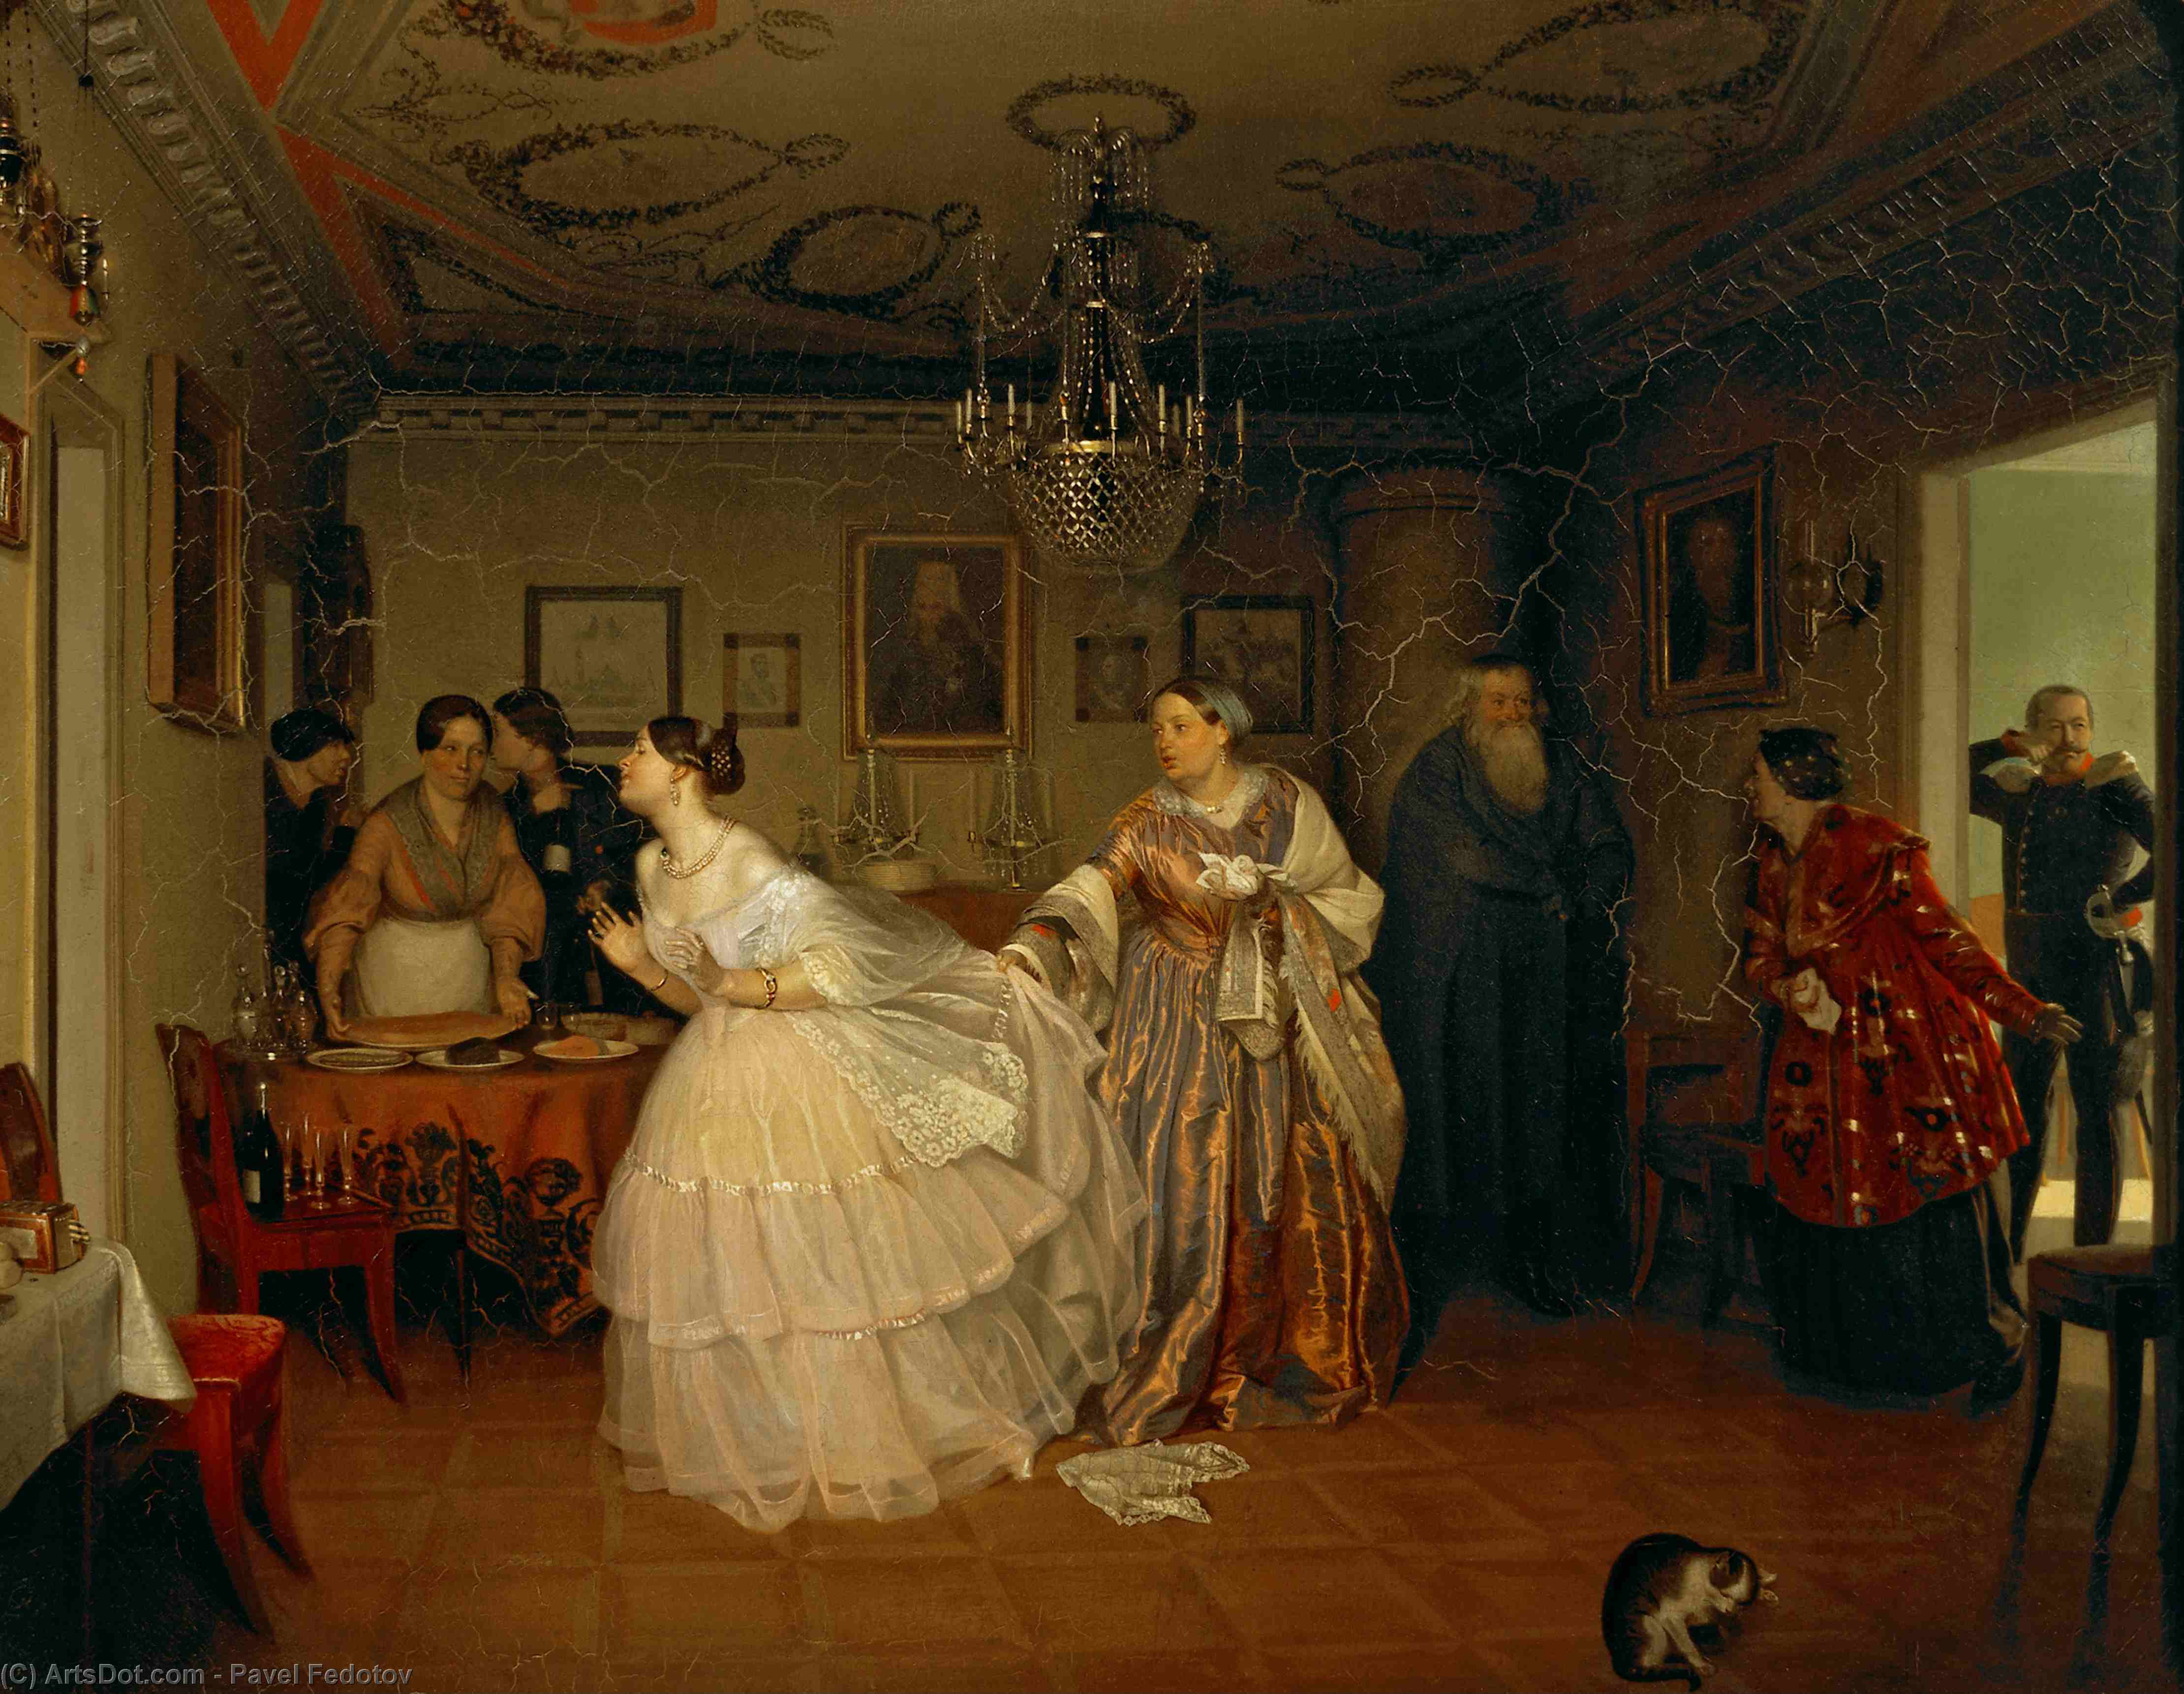 The Major`s Marriage Proposal, 1851 by Pavel Fedotov (1815-1852) | Art Reproduction | ArtsDot.com